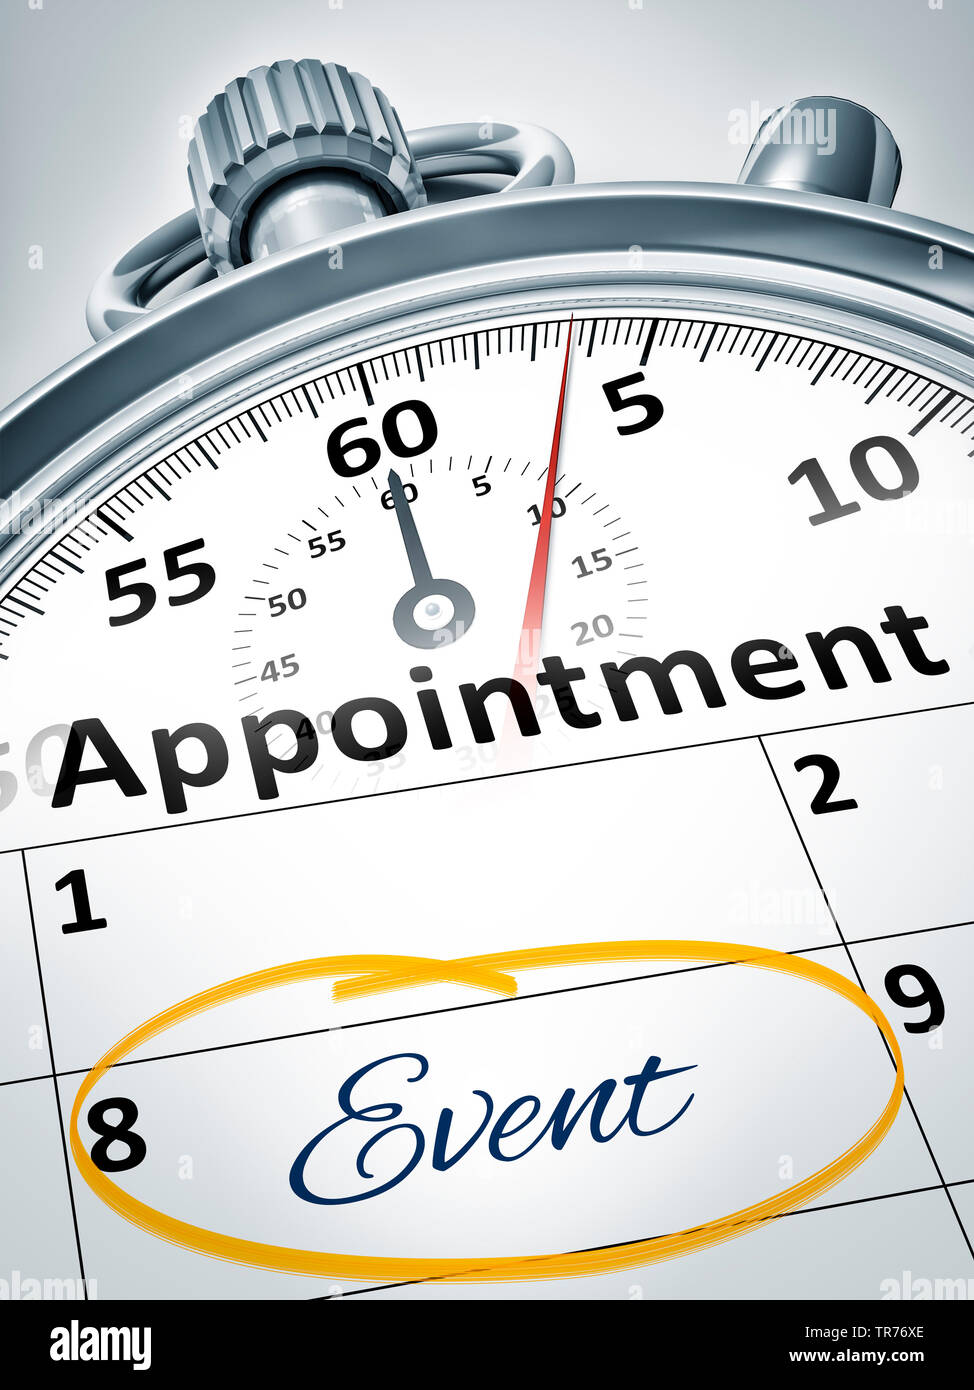 3D computer graphic, stopclock against white background lettering APPOINTMENT/EVENT - Stock Image